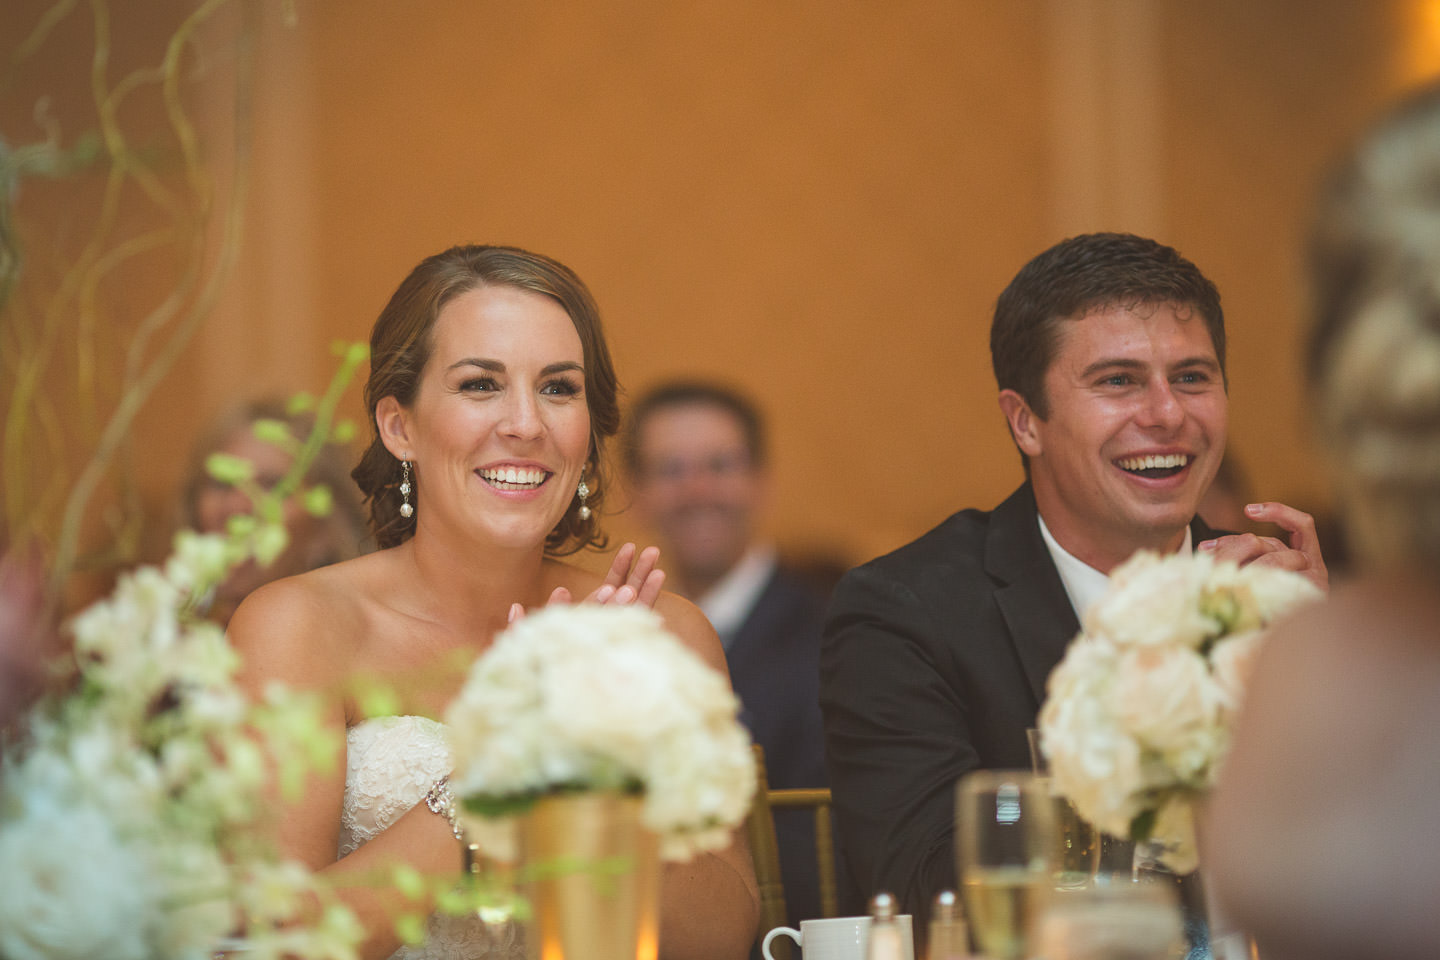 Dearborn-Wedding-The-Dearborn-Inn-Reception-Bride-Groom-Laughing